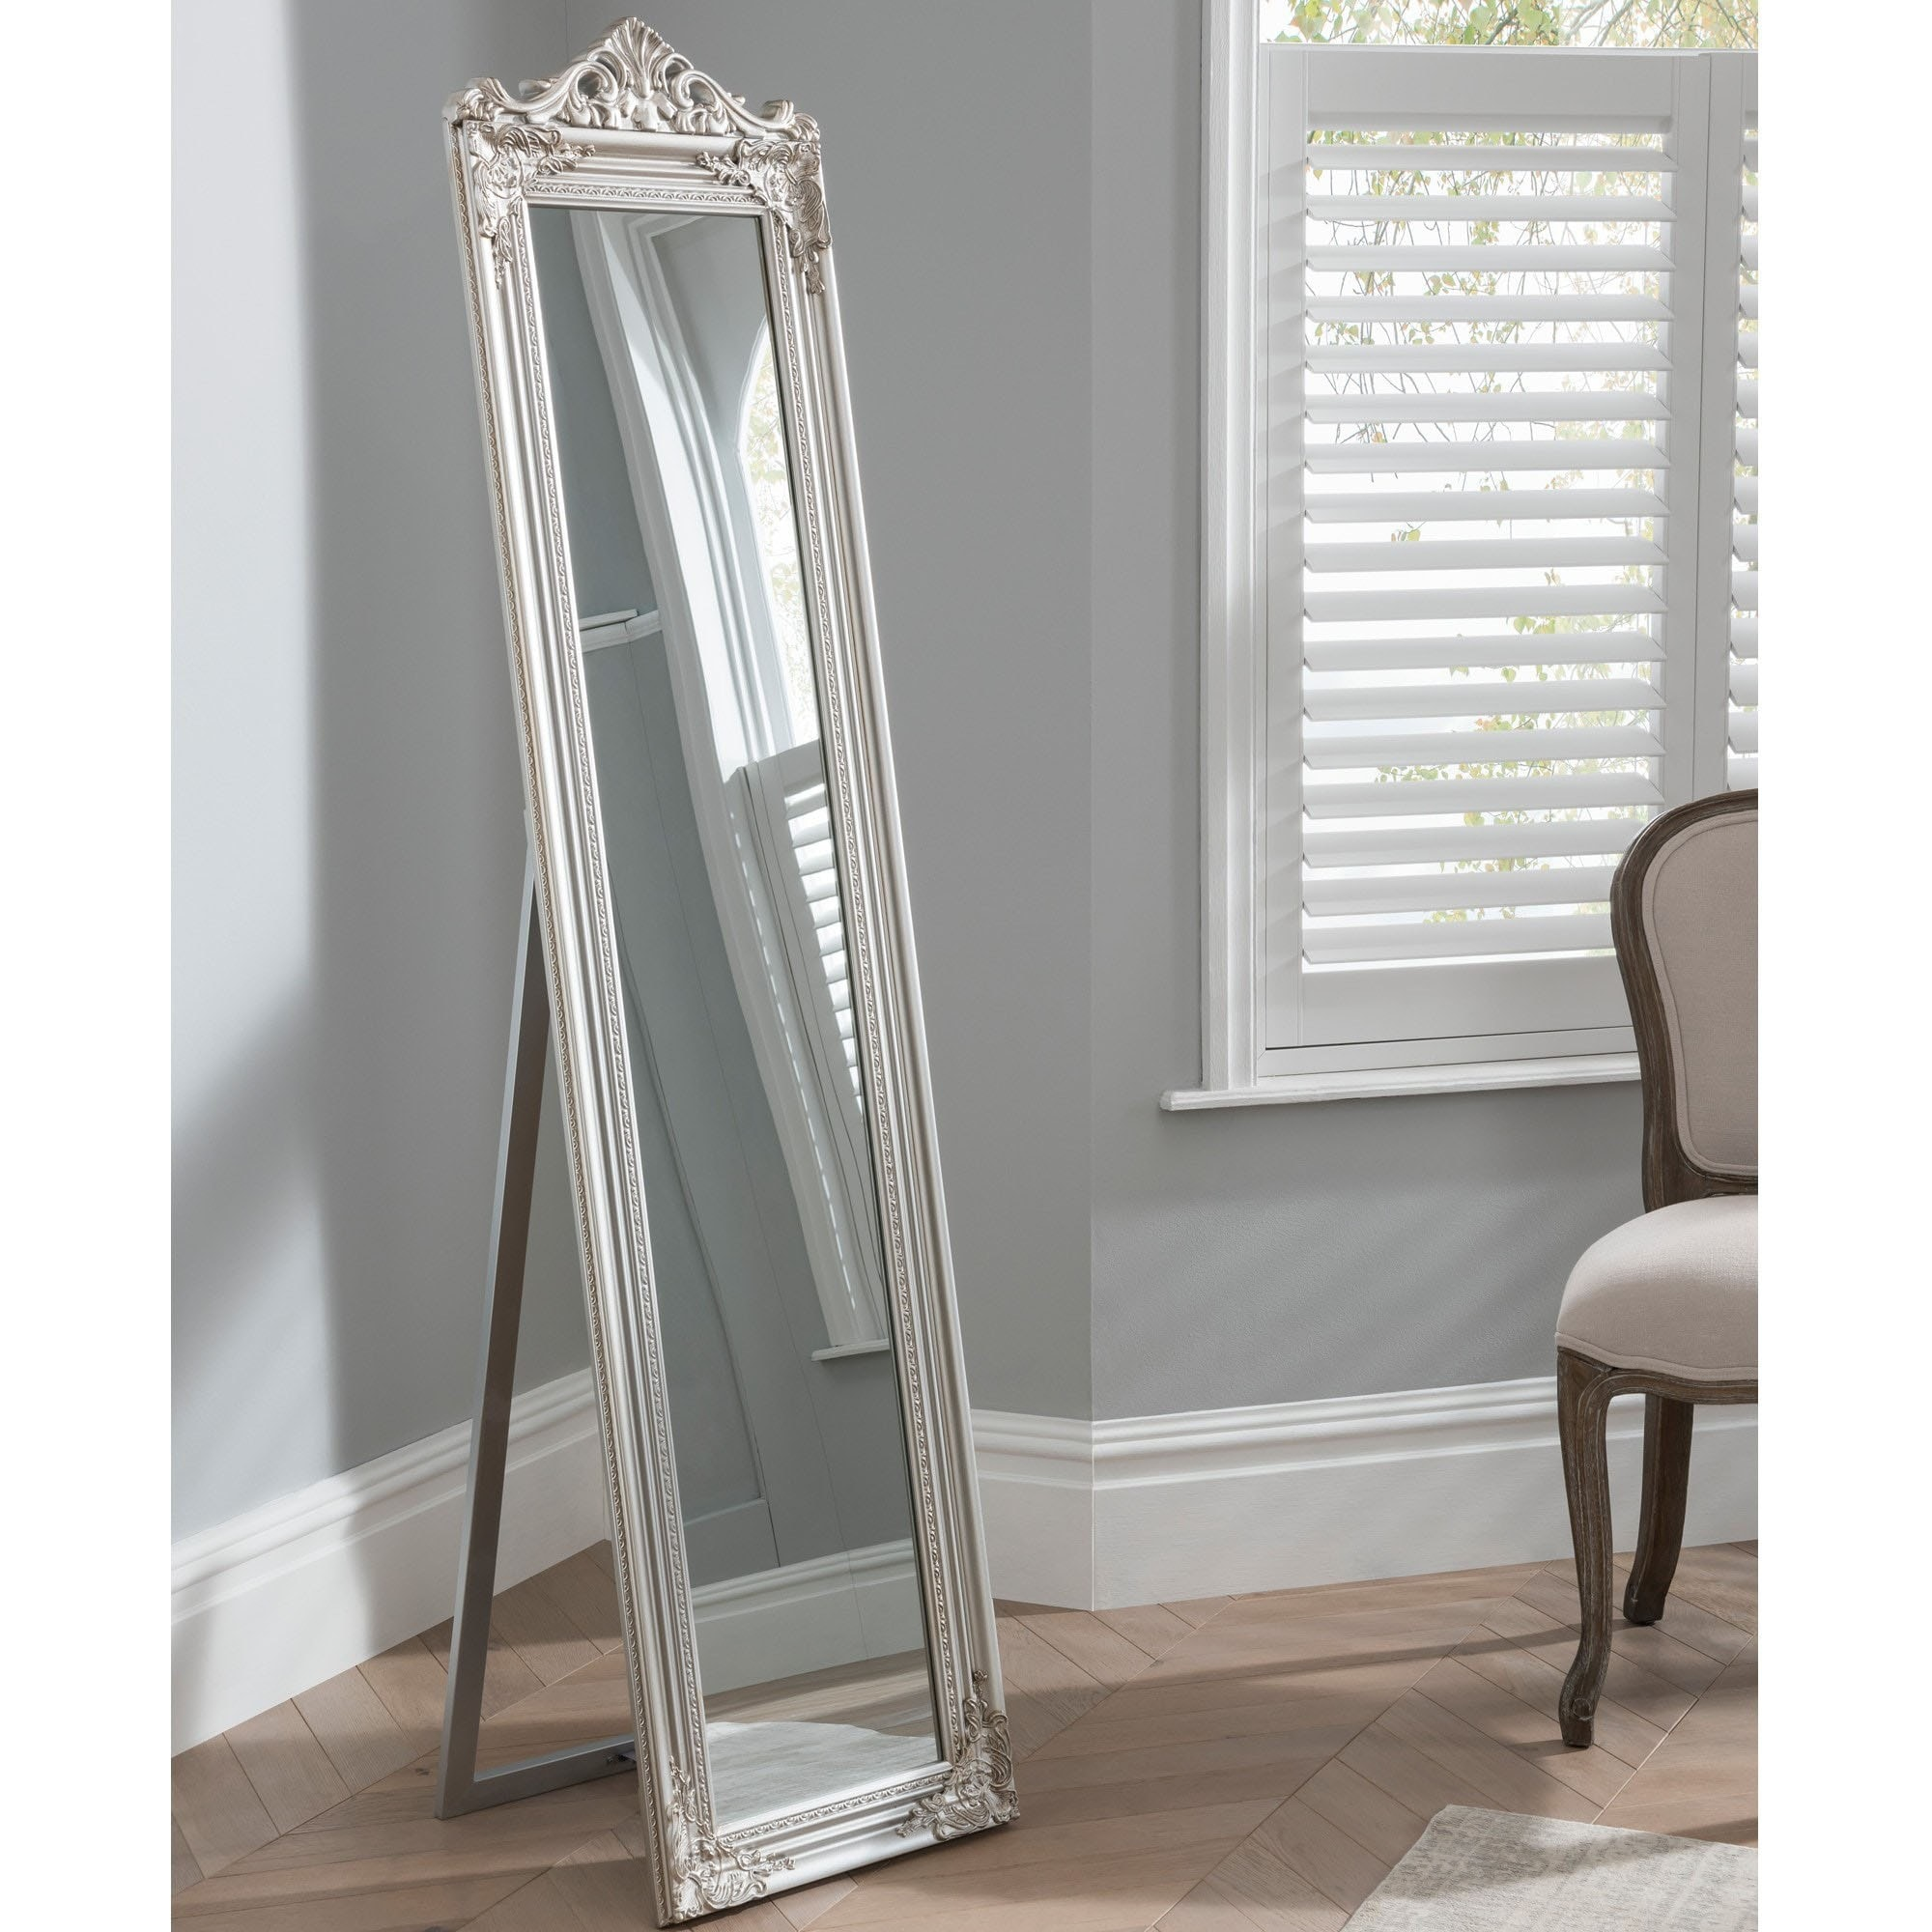 Elizabeth Silver Shabby Chic Antique Style Floor Standing